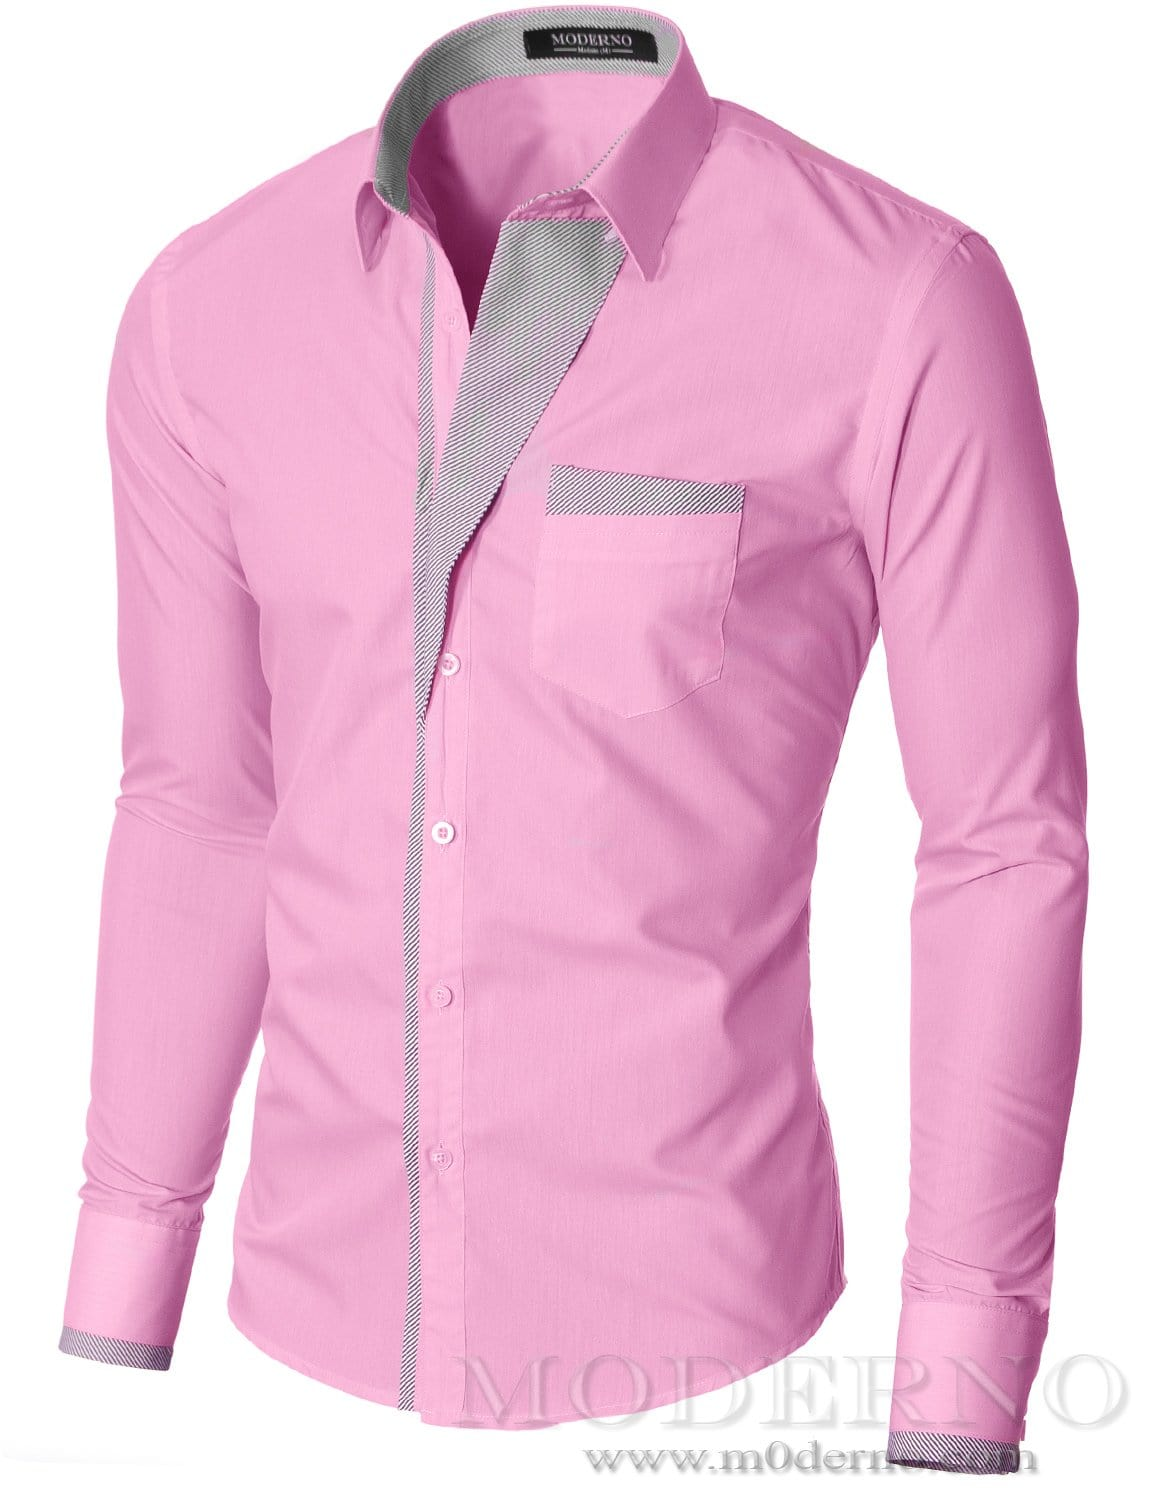 Slim Fit Mens Pink Button Down Shirt By Moderno Vgds41ls